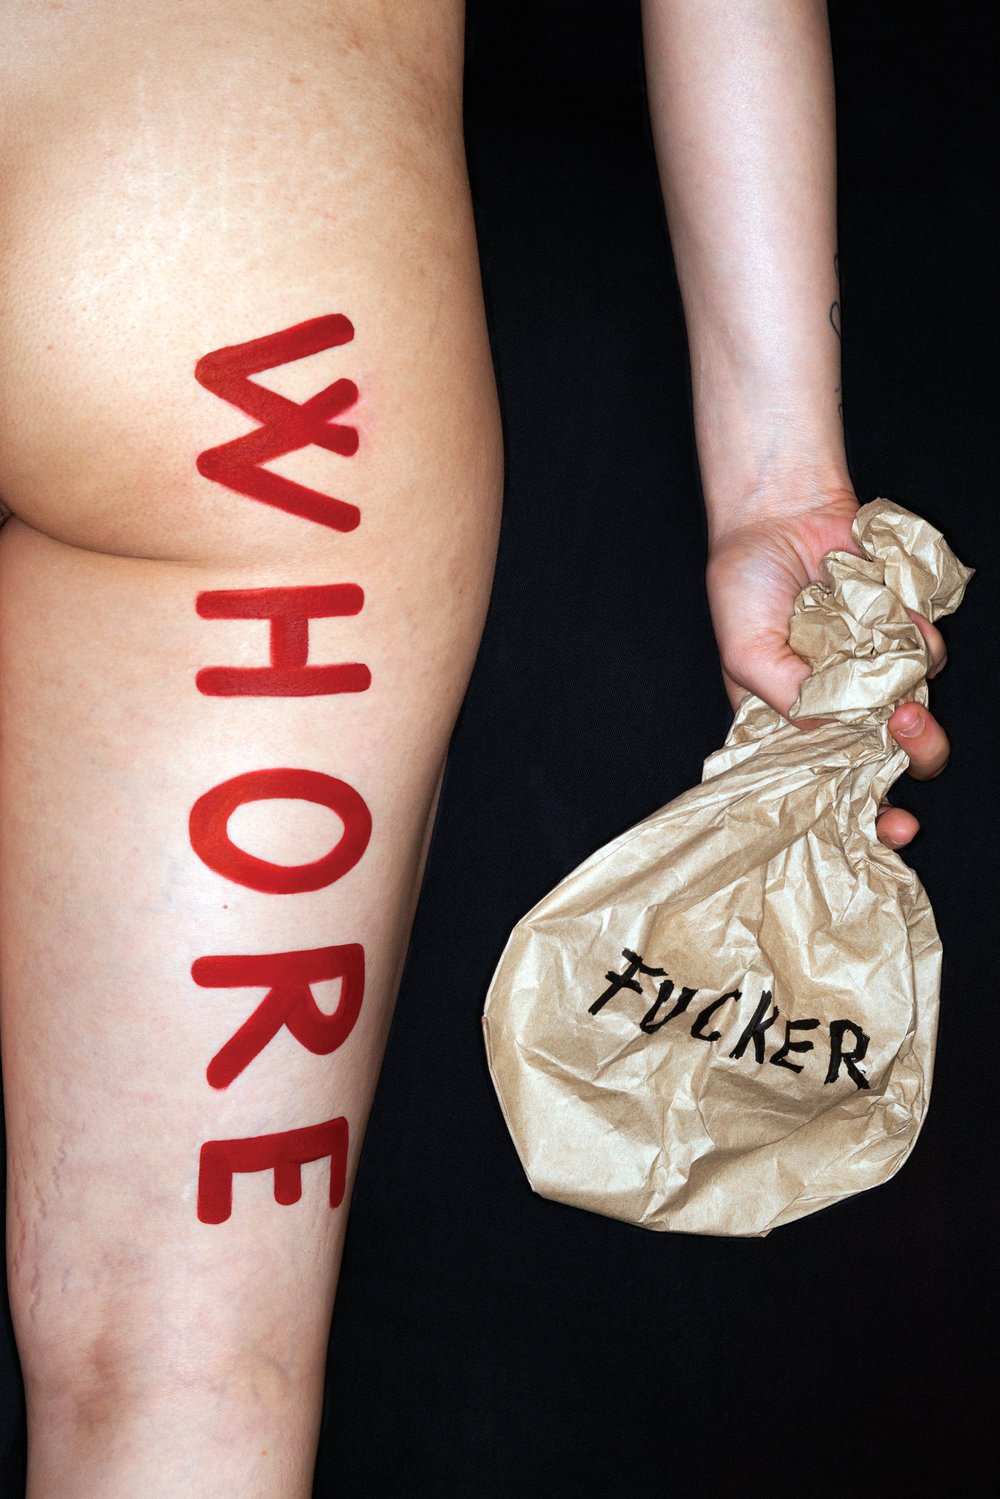 whore, with fucker lunch bag  , 2016, from the series: 21st century woman, photograph, sizes vary.